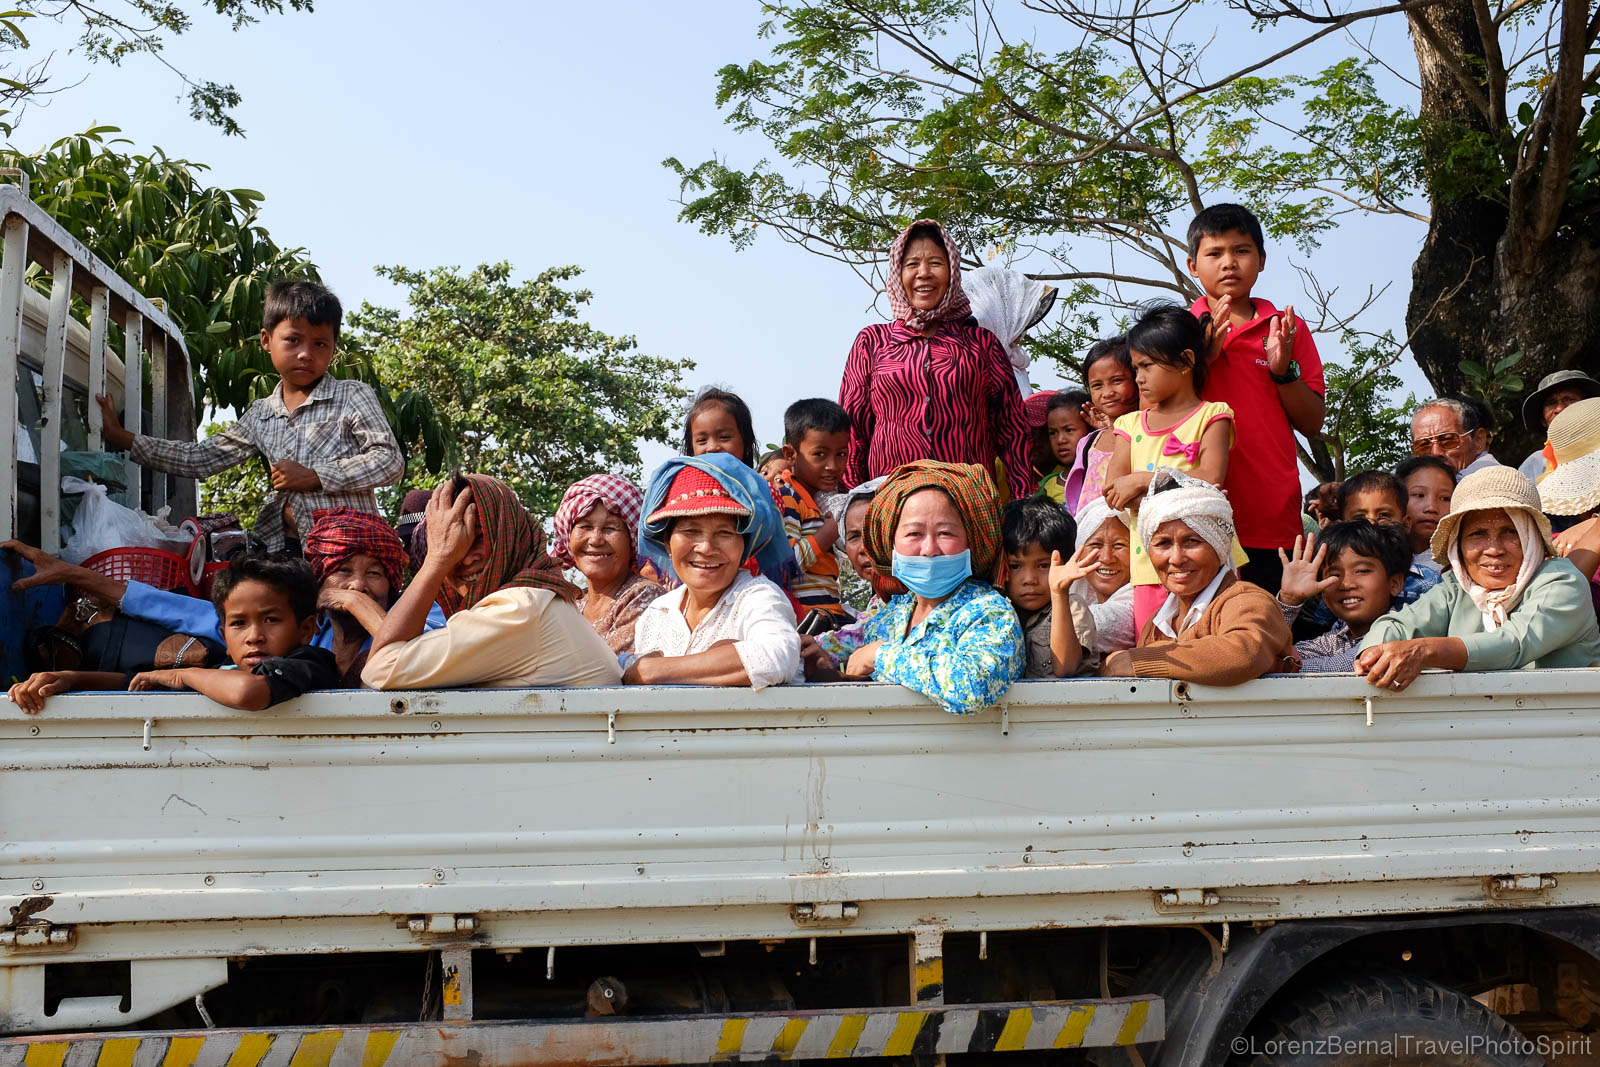 Transportation of people in Kampot countryside, Cambodia